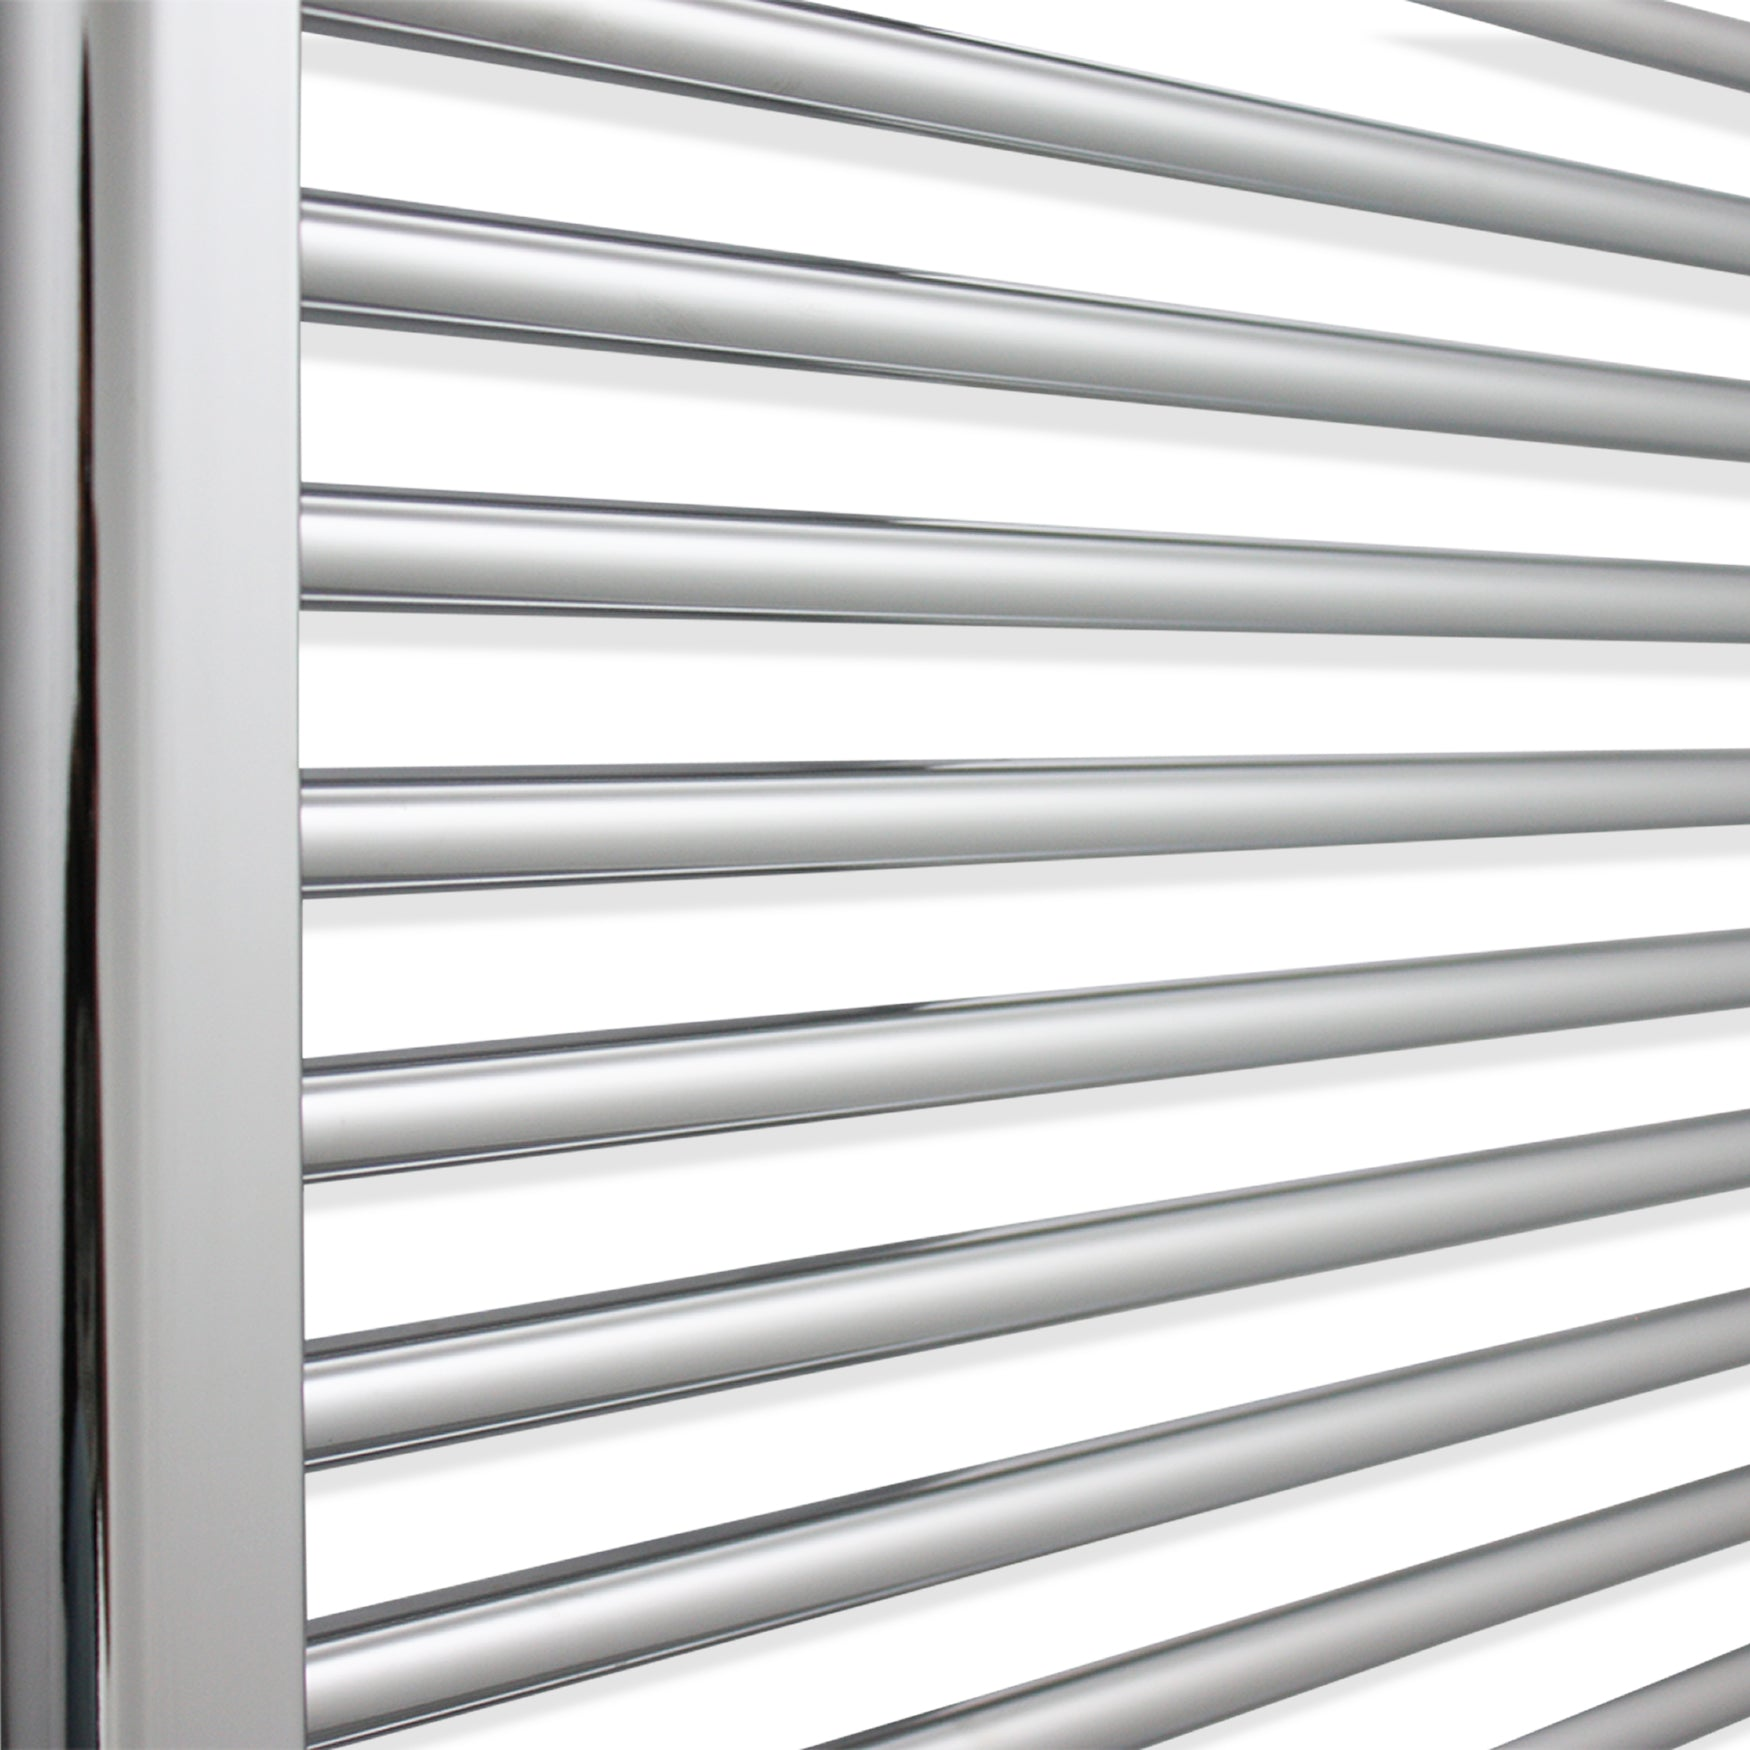 650mm Wide 1000mm High Flat Chrome Heated Towel Rail Radiator HTR